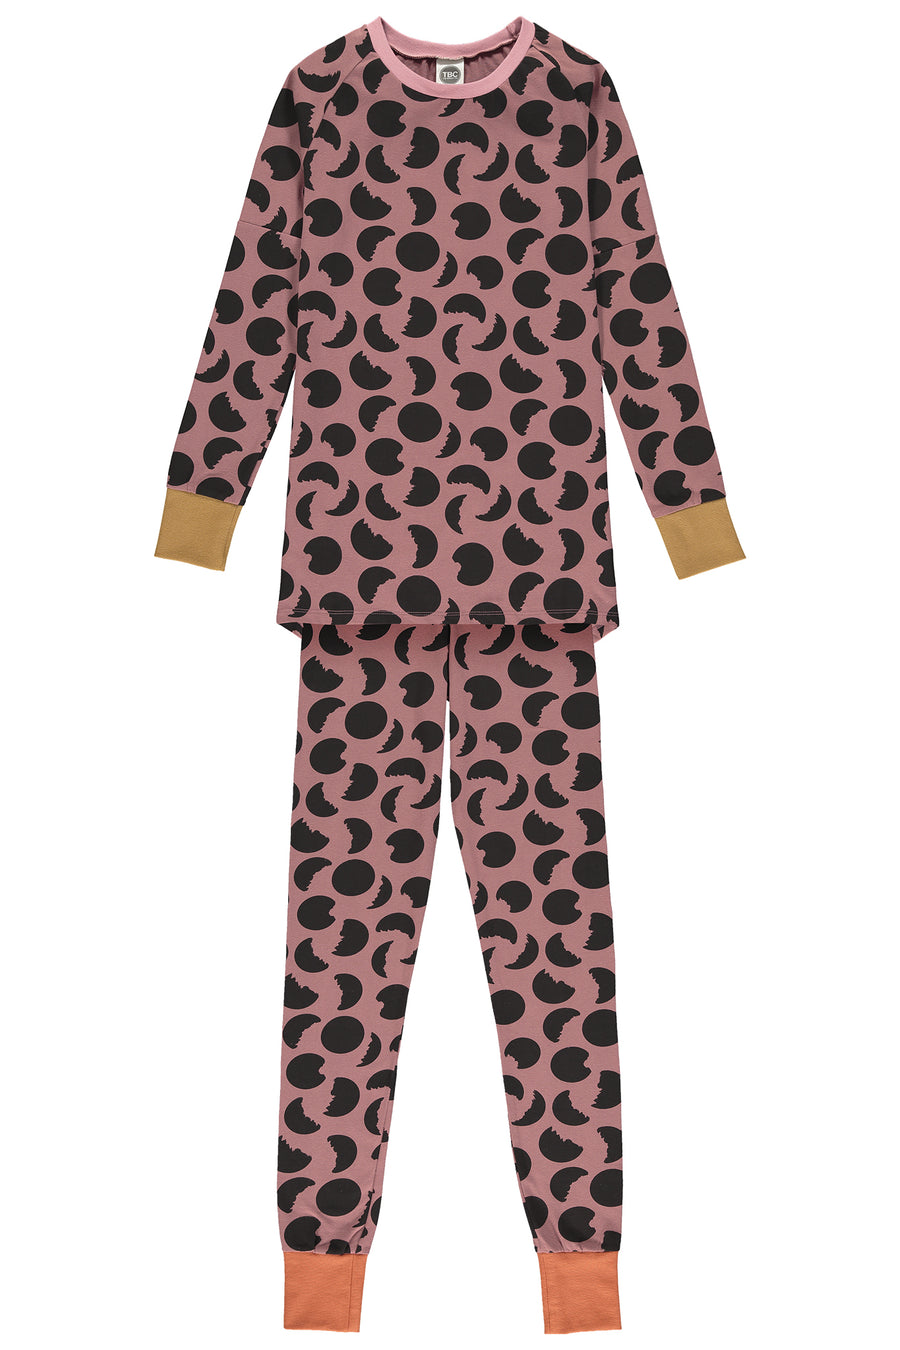 WOMEN'S SLIM JYMS PYJAMAS - MOONS APPLE BUTTER